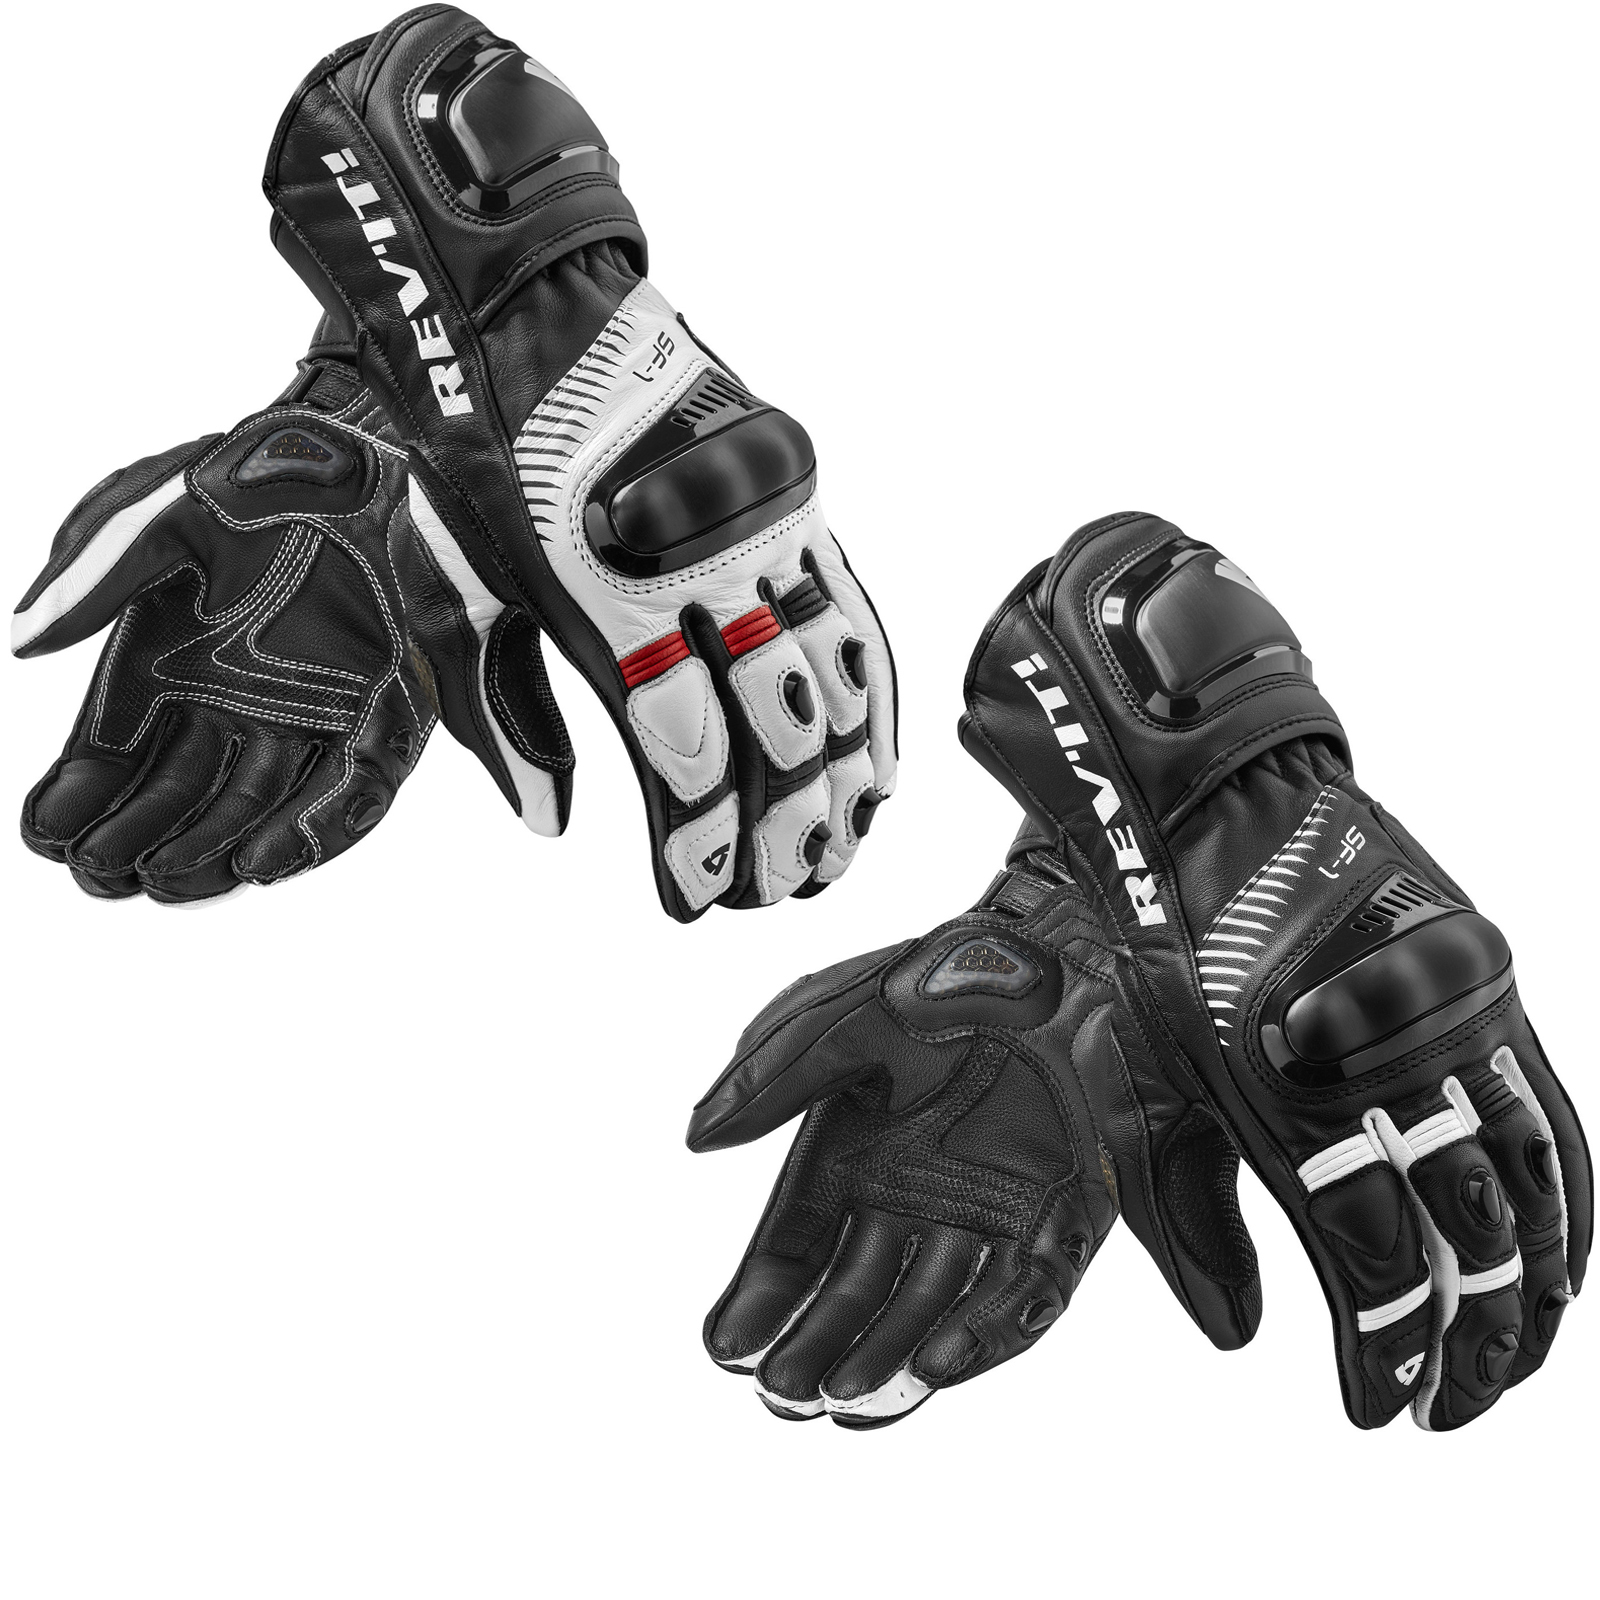 Motorcycle gloves double cuff - Rev It Spitfire Leather Motorcycle Gloves